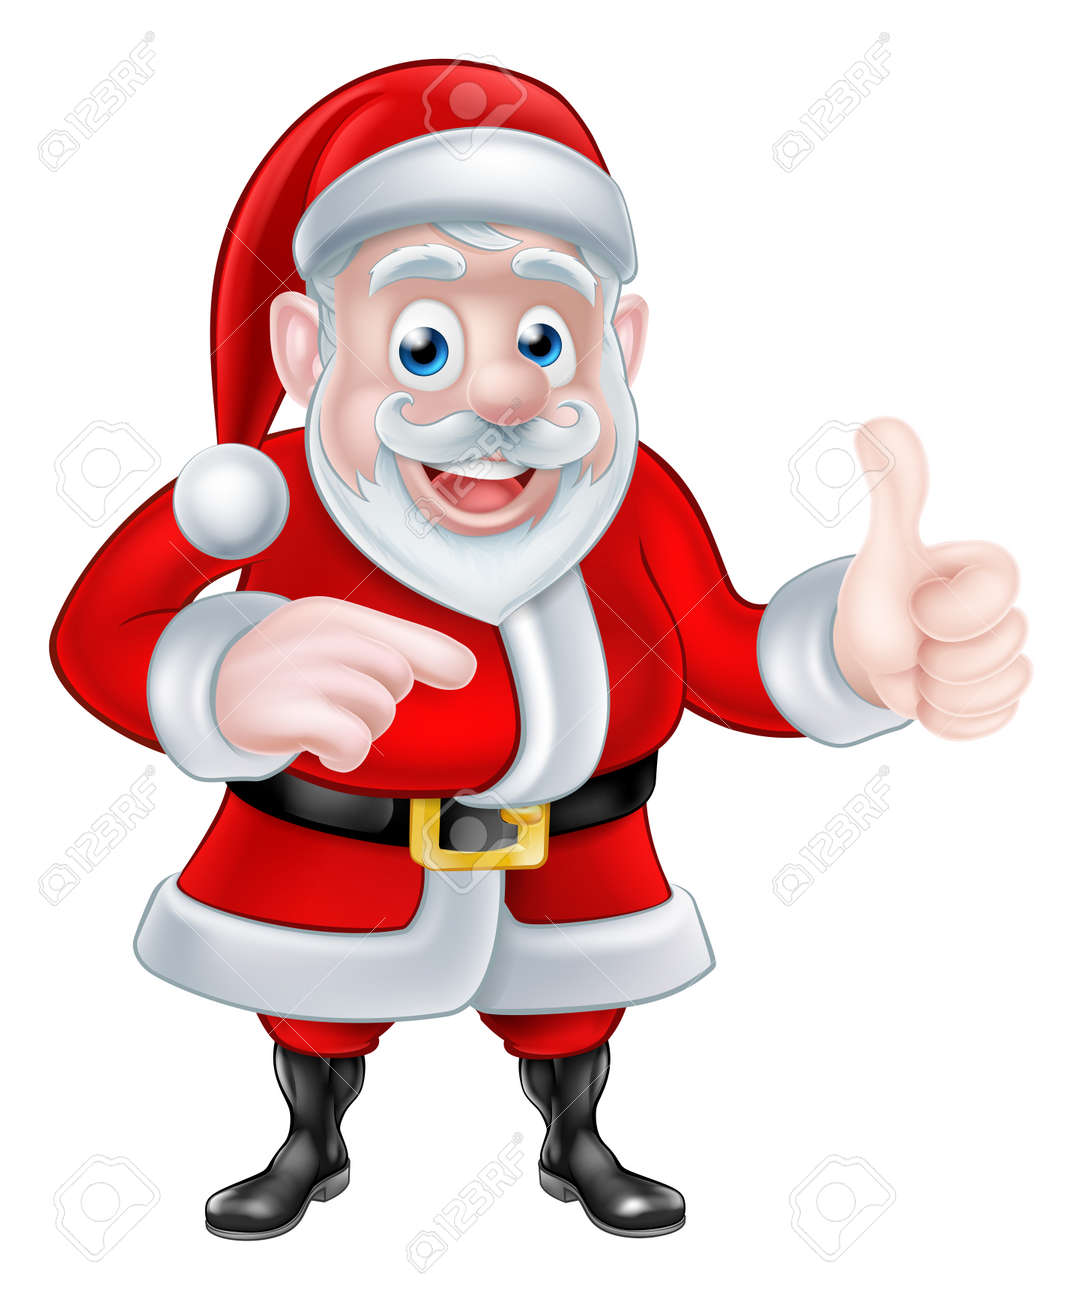 Christmas Cartoon Images.A Christmas Cartoon Illustration Of Santa Claus Pointing And